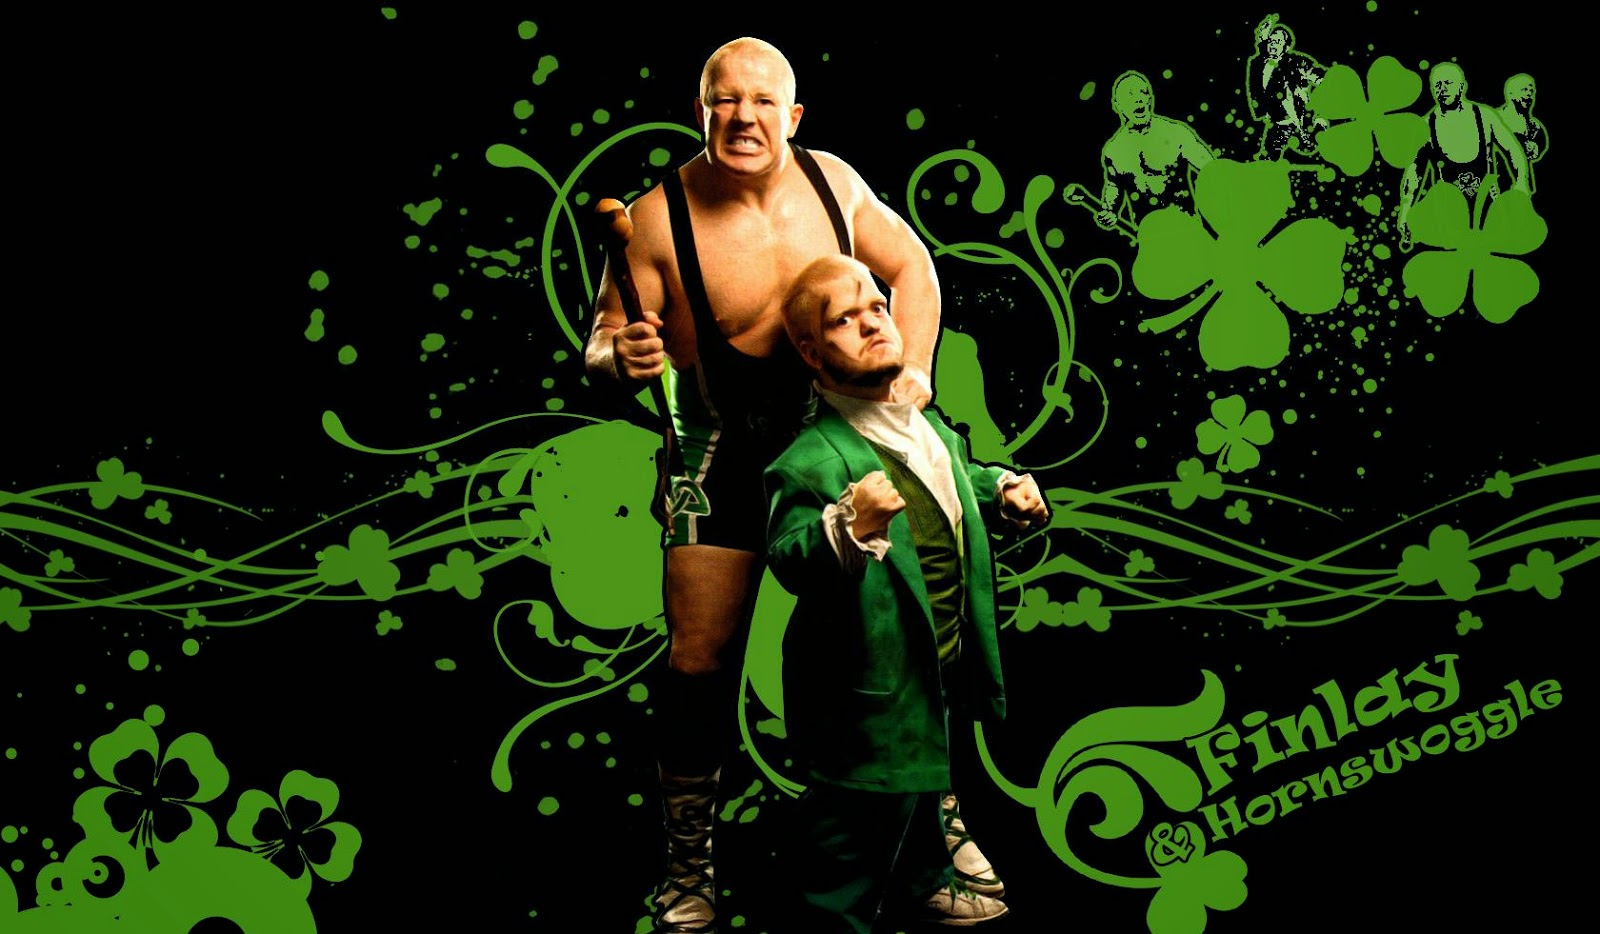 wwe hornswoggle hd wallpapers wwe wrestling wallpapers